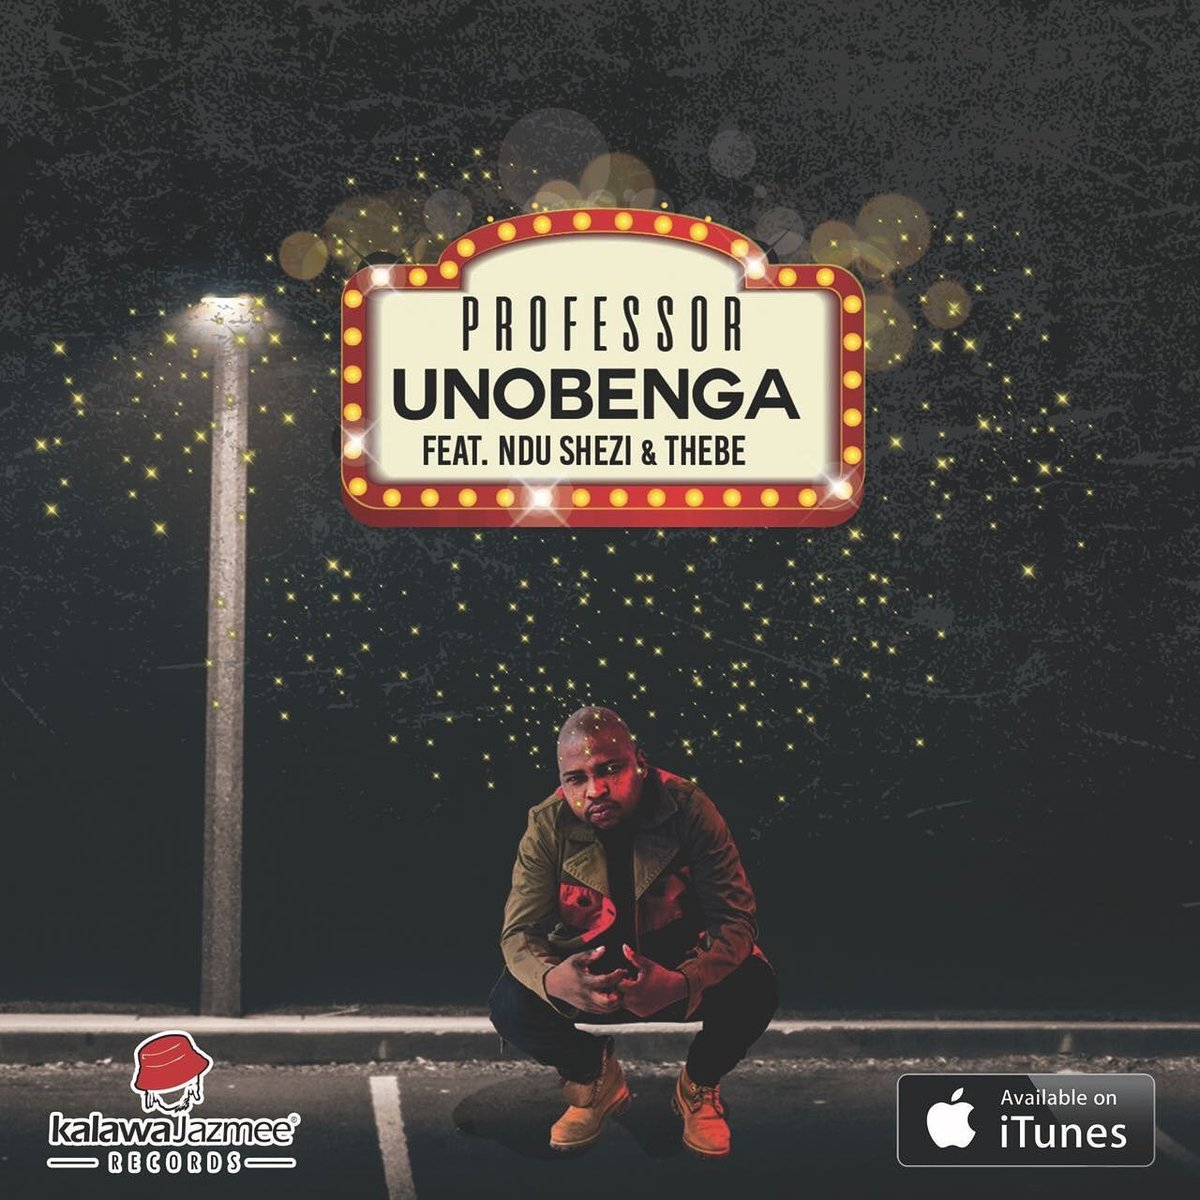 Get my new track #UNOBENGA on @iTunes and let's dance